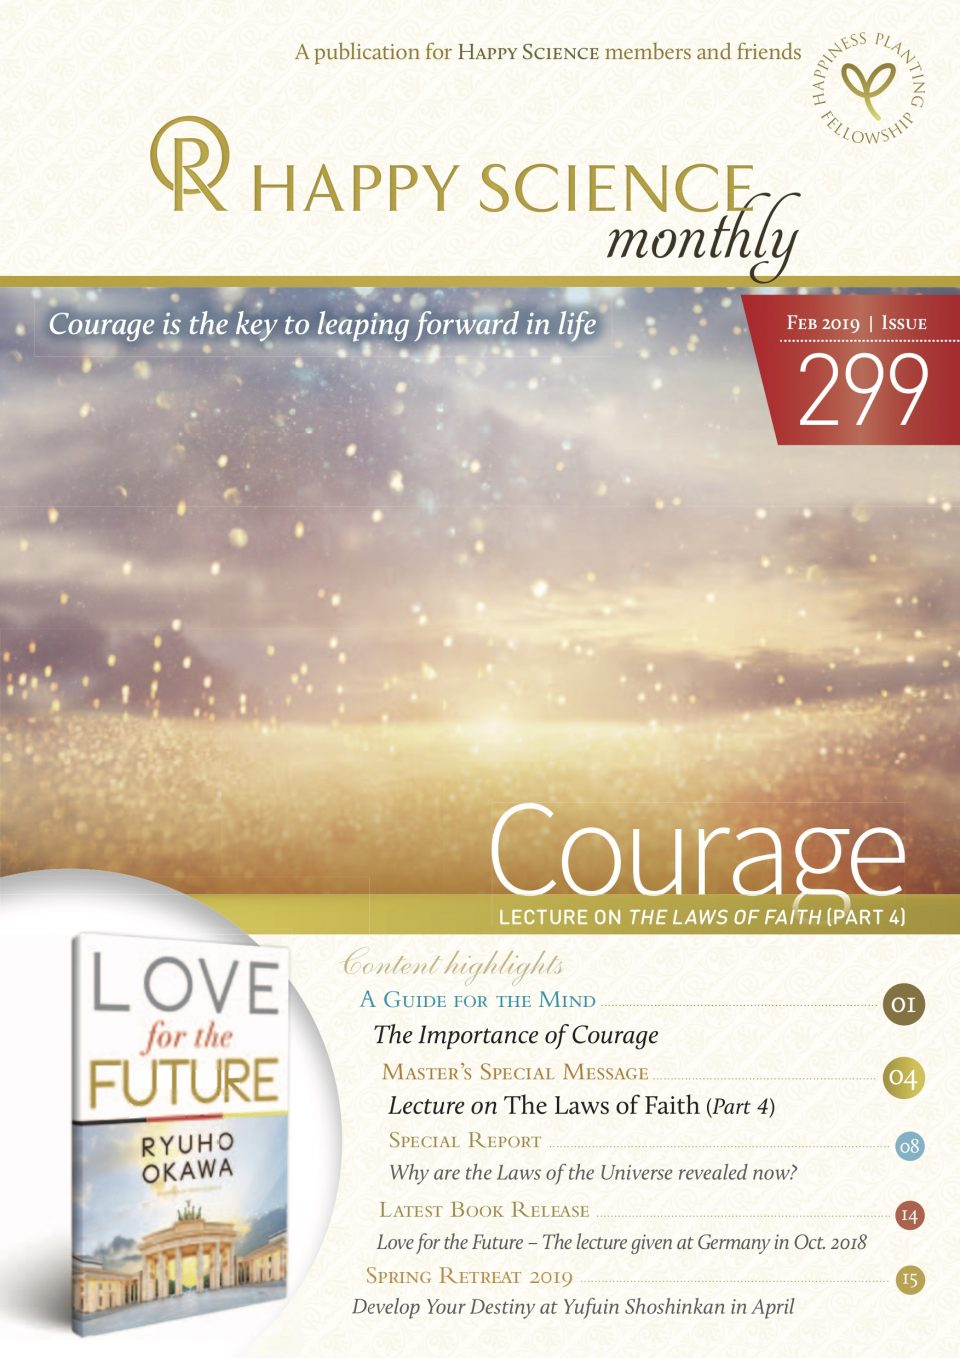 HAPPY SCIENCE Monthly 299 is released!